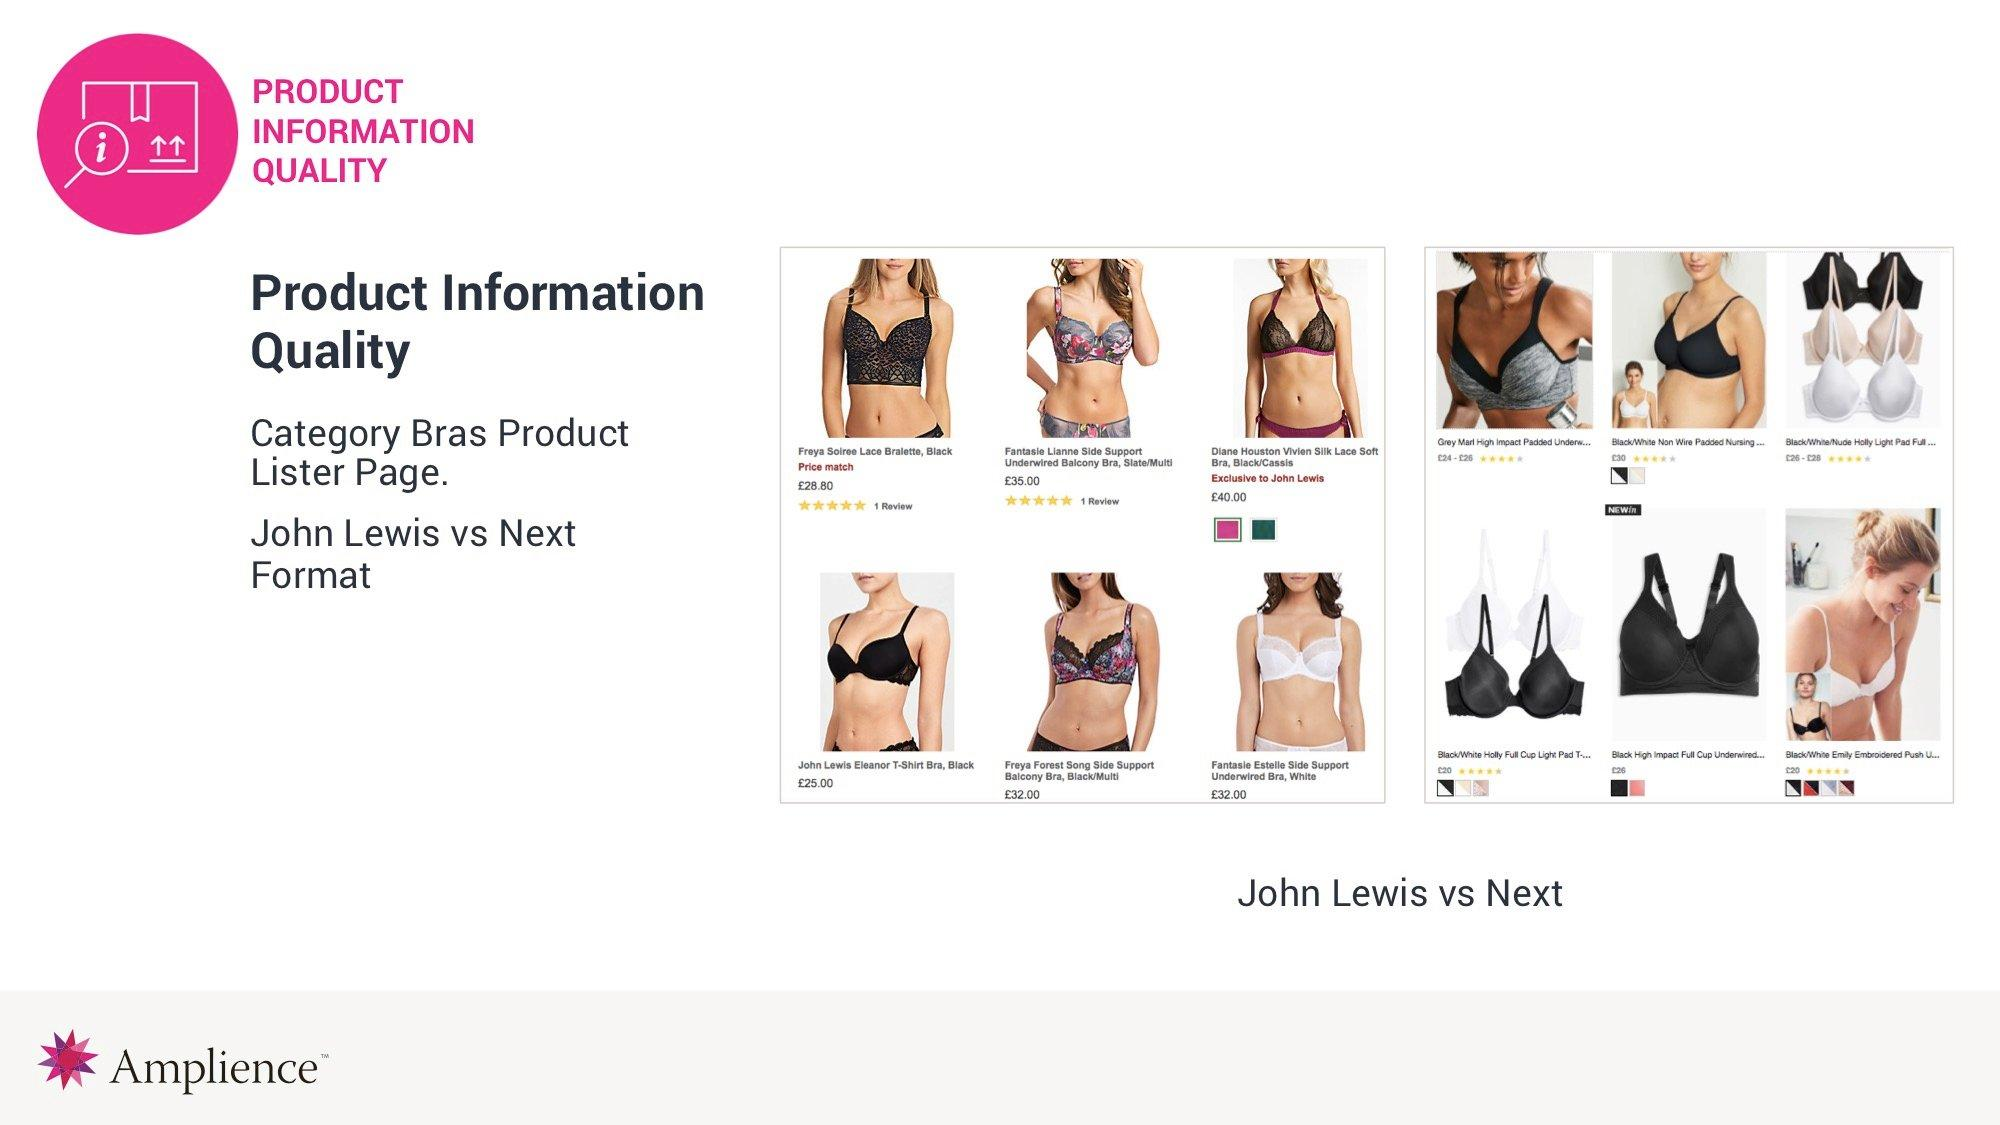 fc8e5f5ad5 Lingerie Content Index – Key findings   insights - Amplience